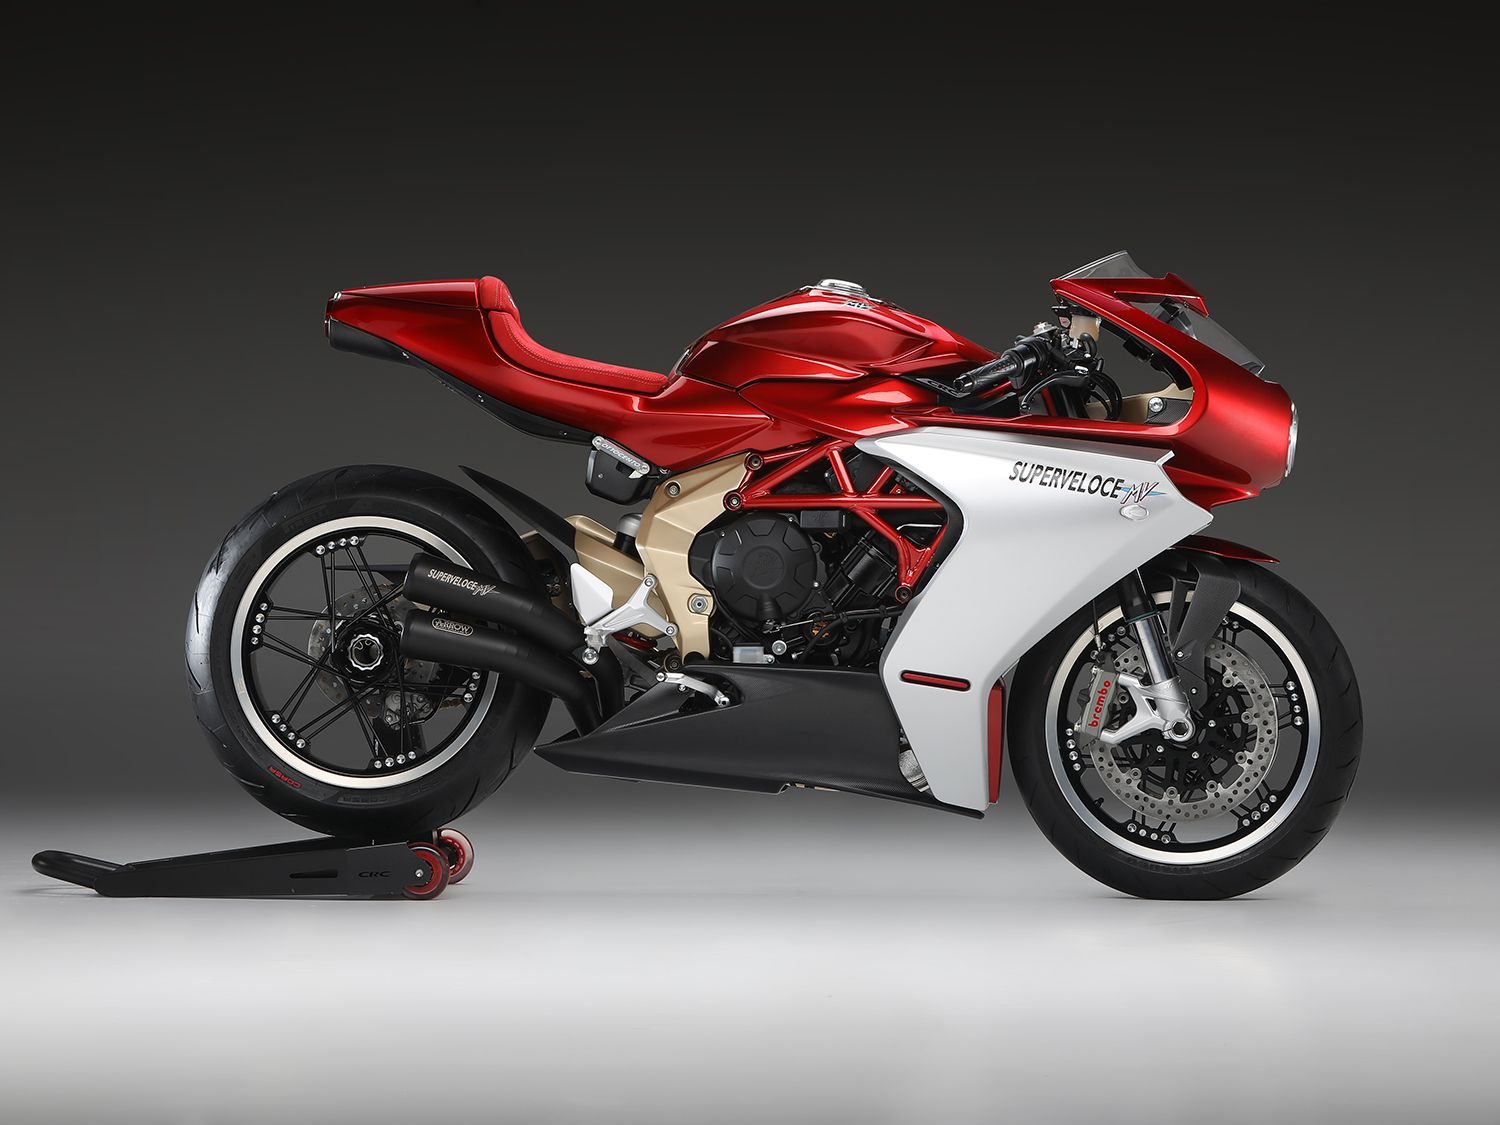 <h2>2020 MV Agusta Superveloce Serie Oro</h2> </br> The 2020 MV Agusta Superveloce Serie Oro will also be making its way from the production lines to dealer floors soon.